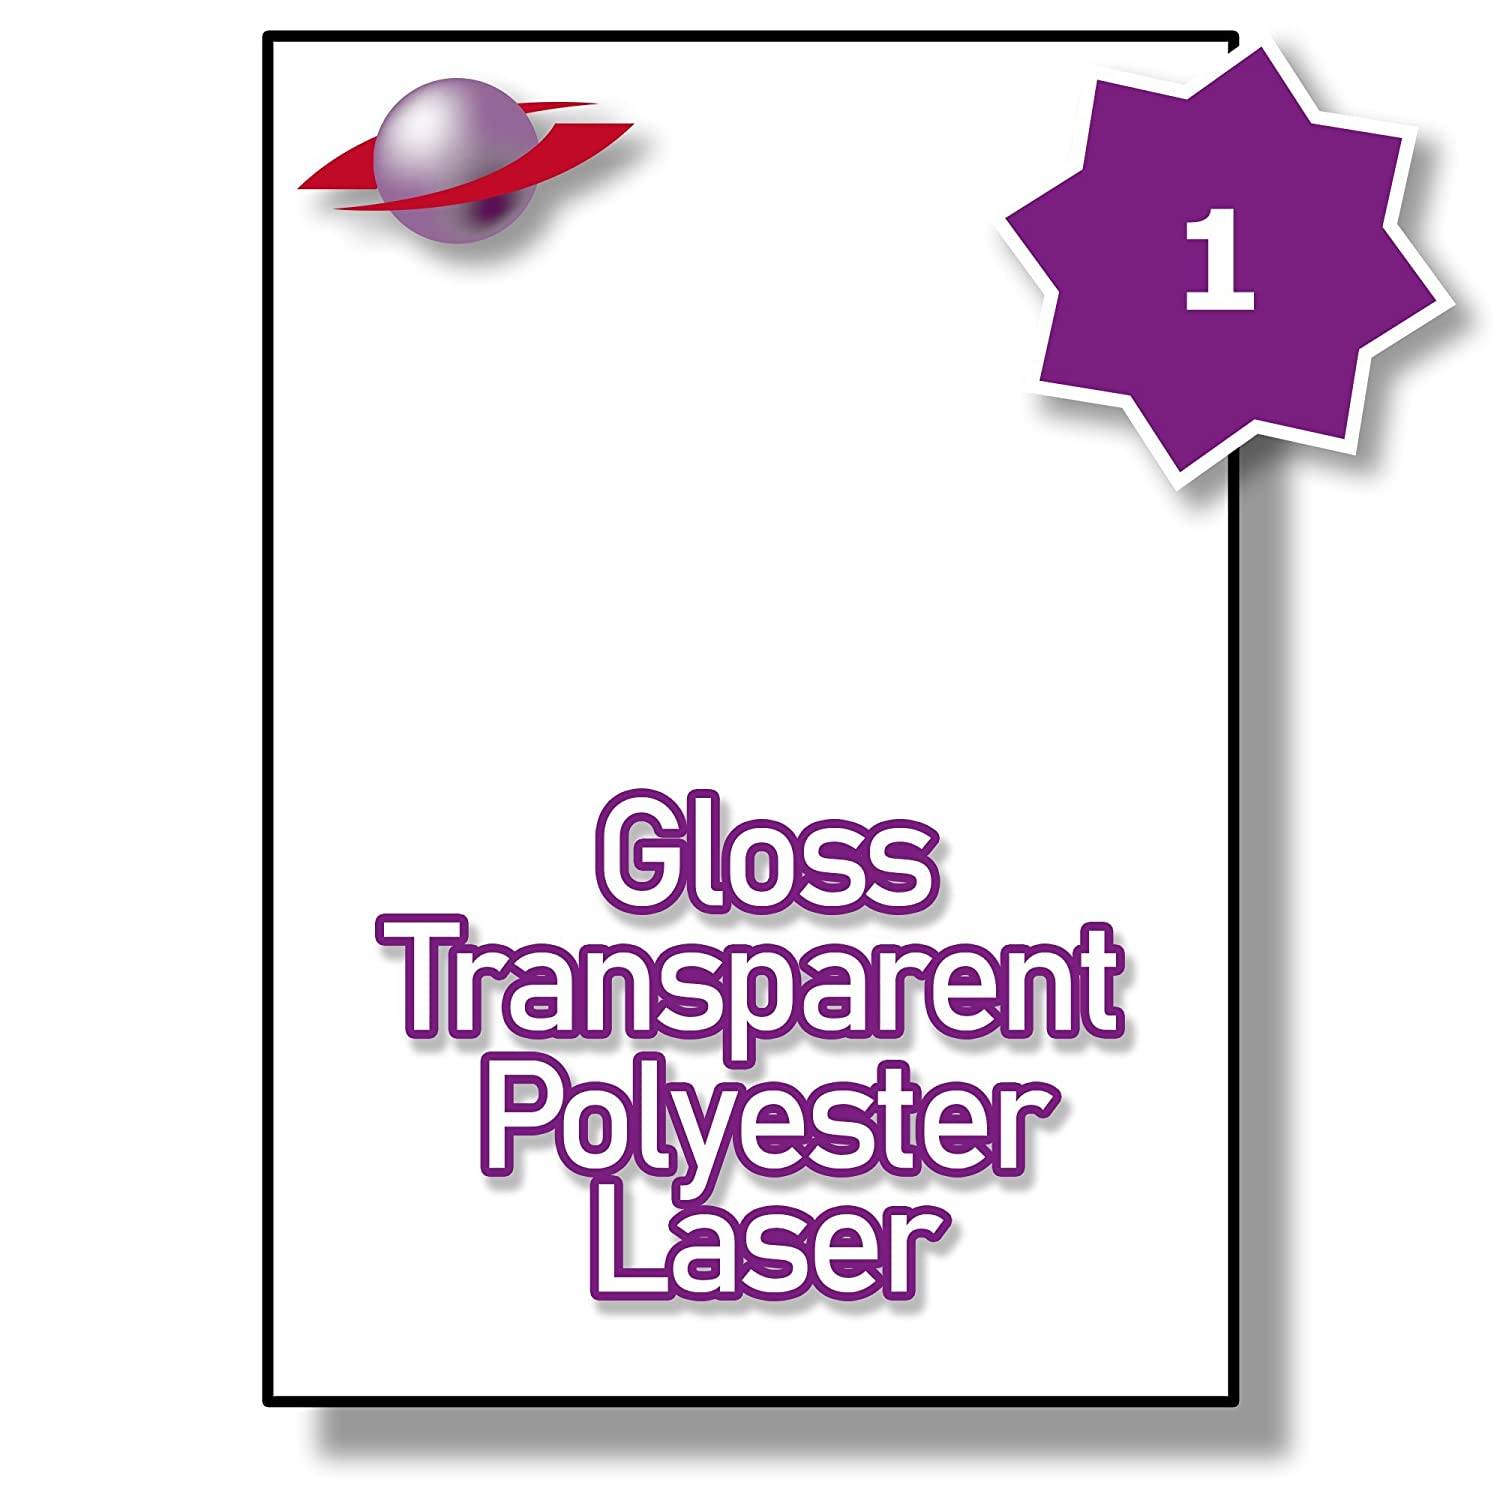 1 Per Page/Sheet 10 Sheets (10 TRANSPARENT Sticky Labels) Label Planet® CLEAR POLYESTER Self-Adhesive Blank A4 Gloss WATERPROOF Printable Address Shipping Mail Stickers, For Laser Printer, 210 x 297 MM UK LP1/210 GTP, Multi-Use/Purpose